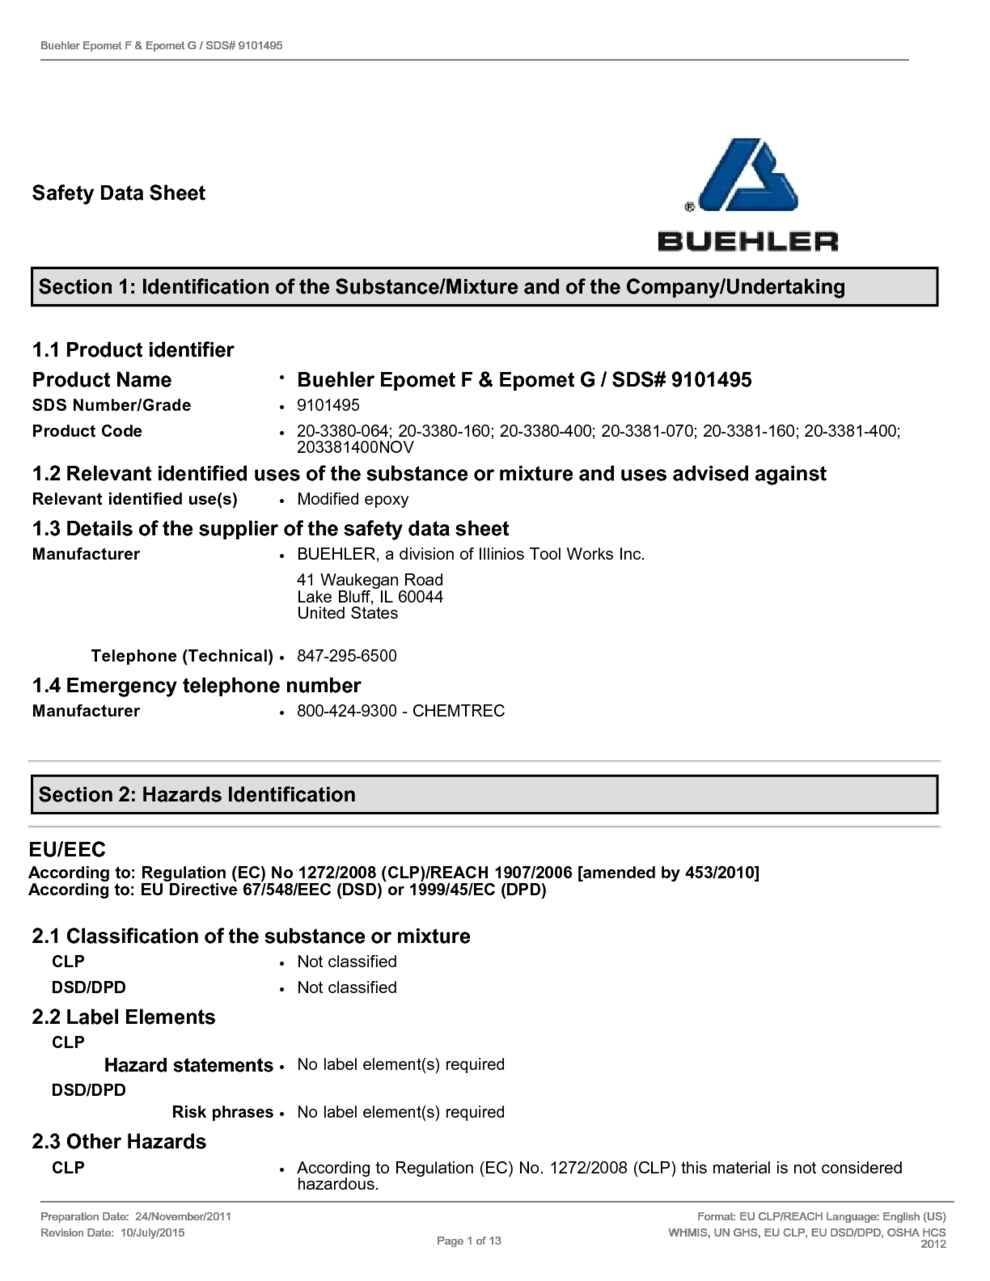 Material Safety Data Sheet Template - Templates #115732